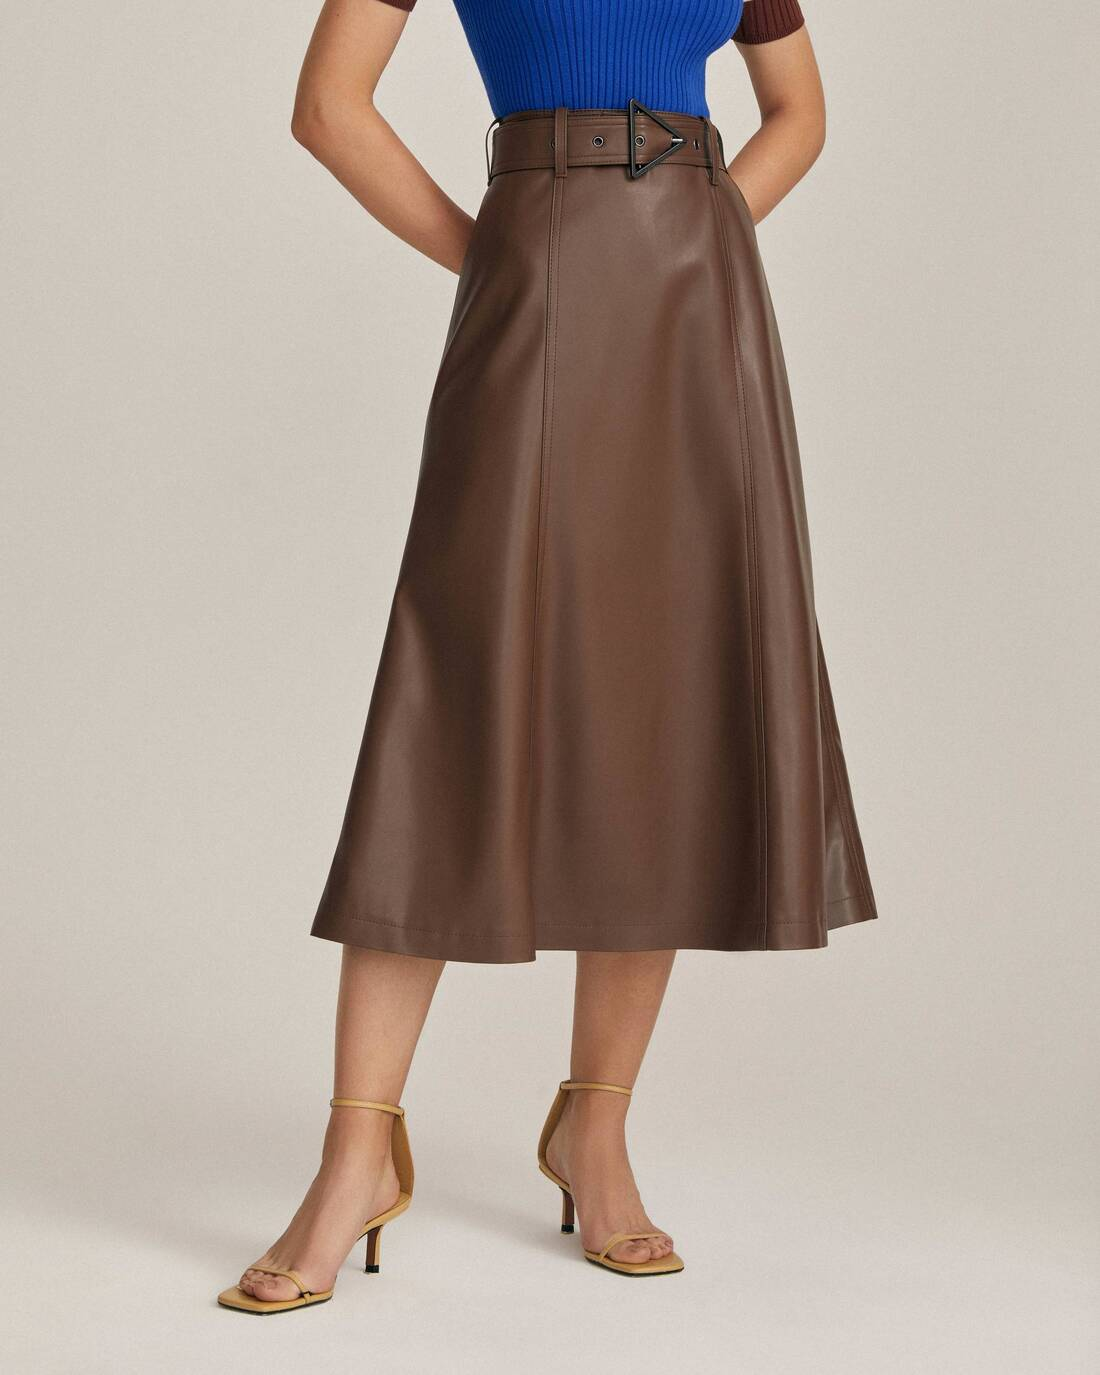 Flared skirt with from eco-leather